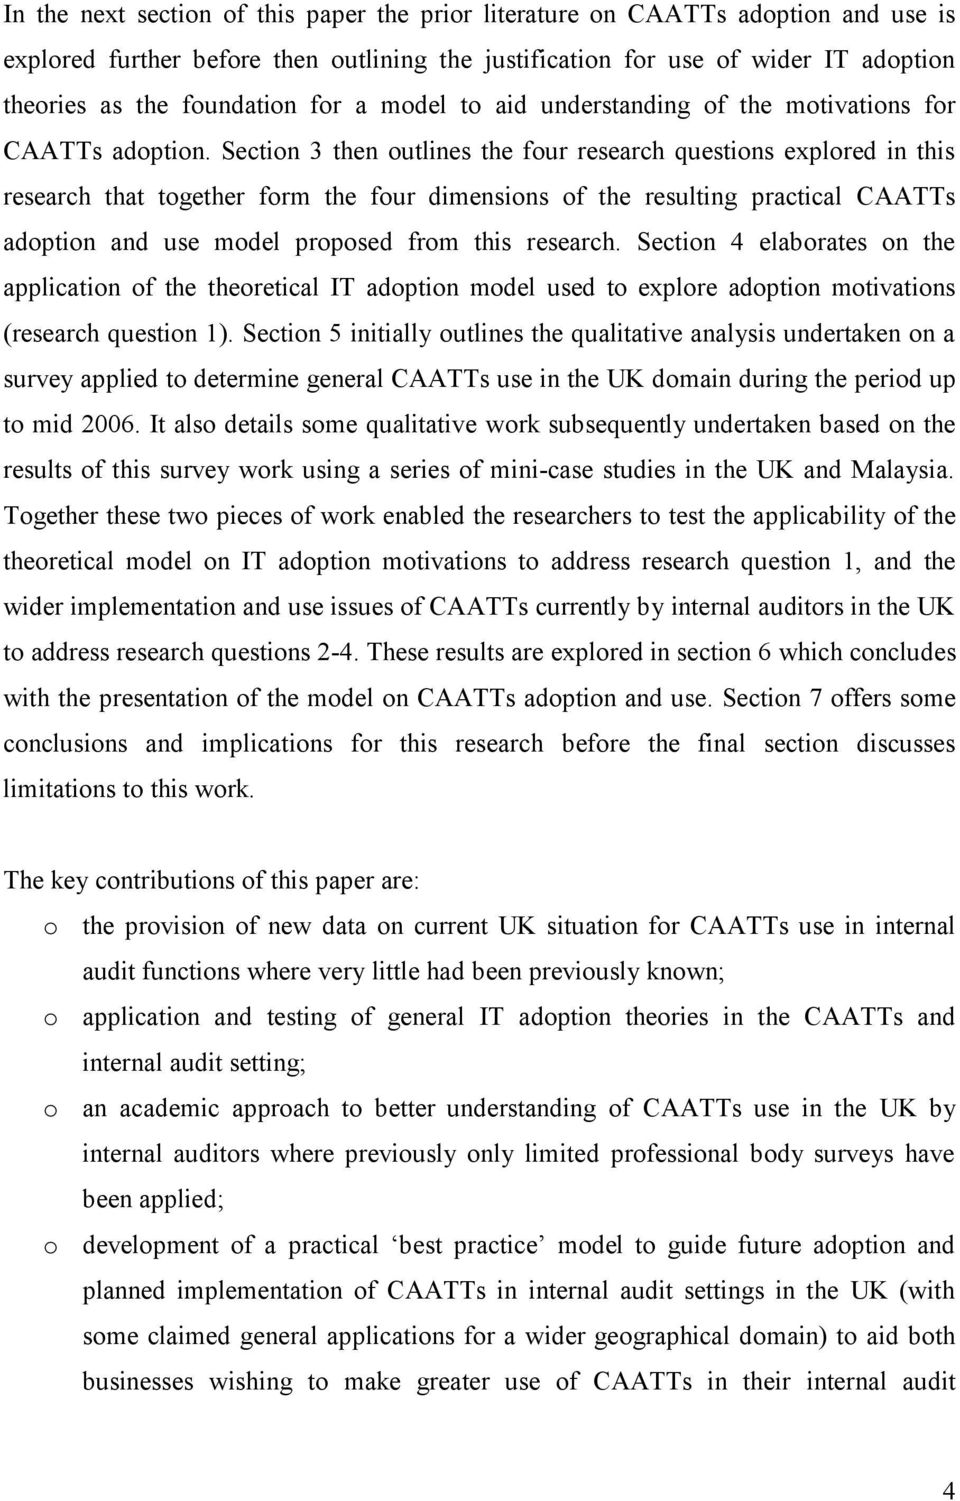 Section 3 then outlines the four research questions explored in this research that together form the four dimensions of the resulting practical CAATTs adoption and use model proposed from this